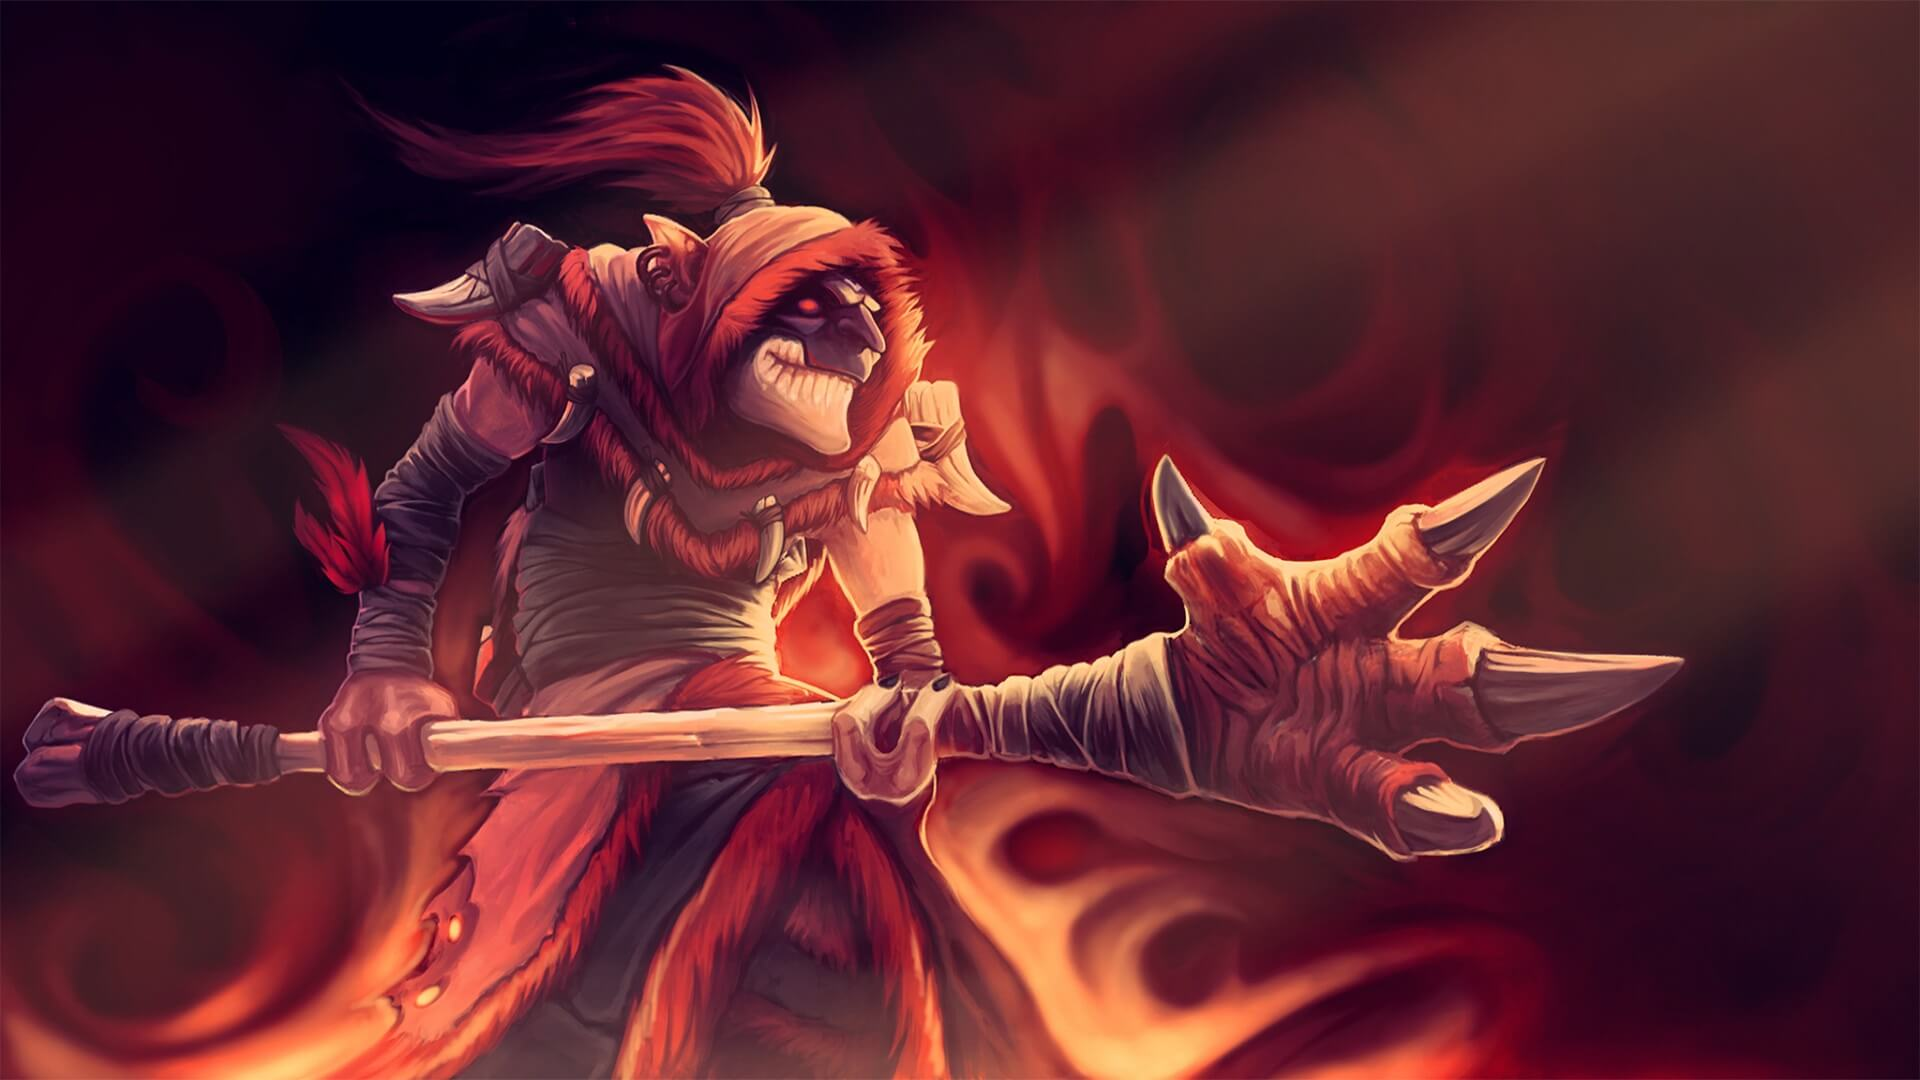 Dazzle has only a 3.1% pick rate in the mid lane at the Divine rank, but he enjoys a 54.3% win rate. Image: Darkclaw Emissary loading screen for Dazzle - Valve